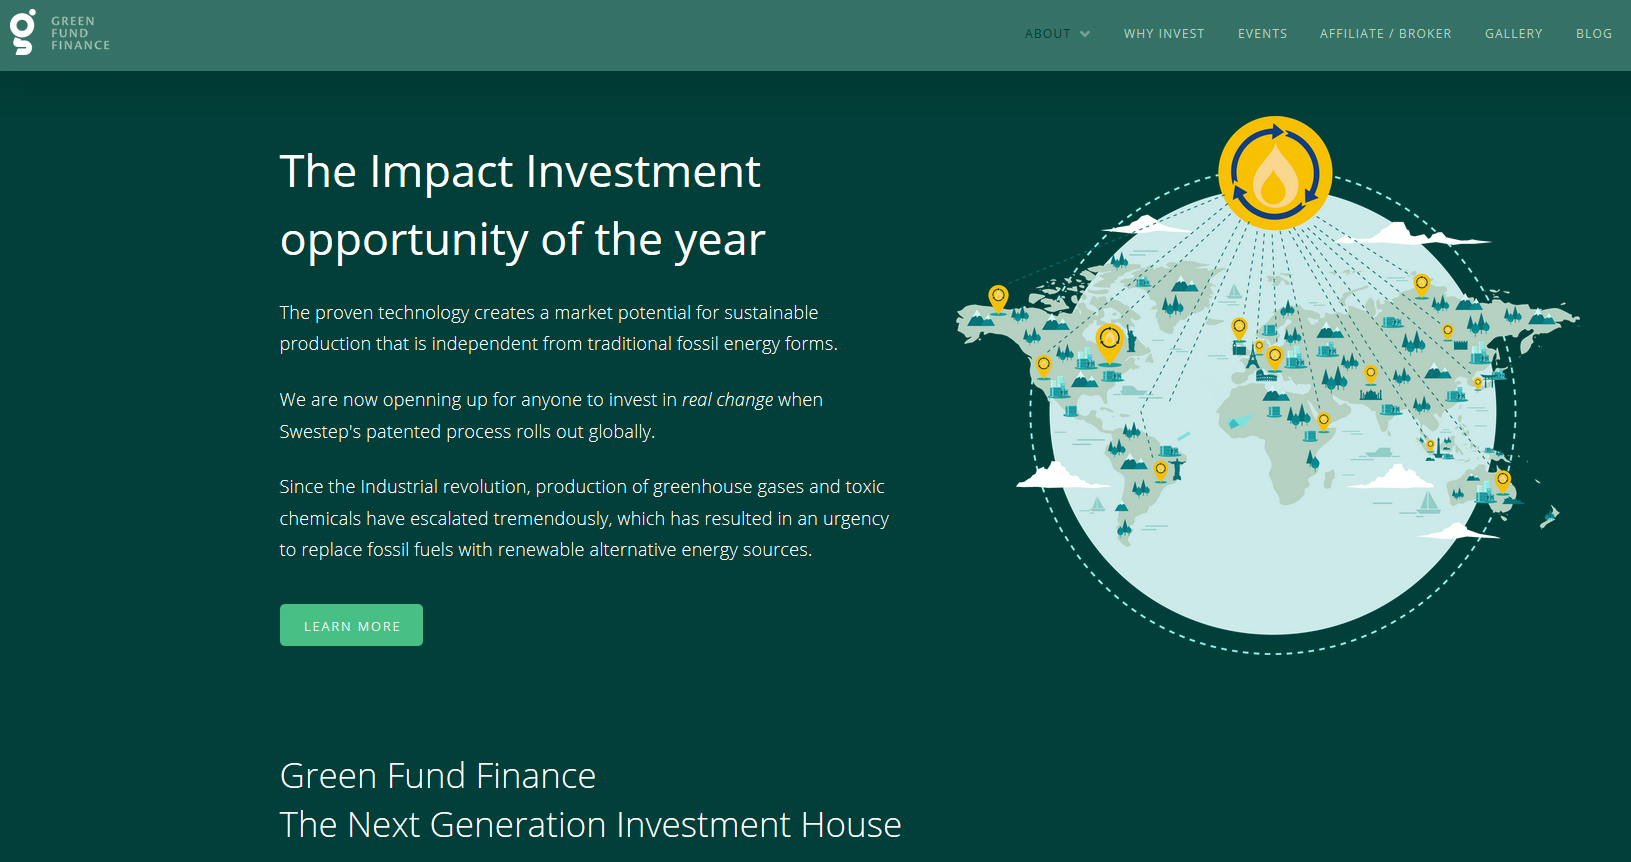 greenfund finance4.